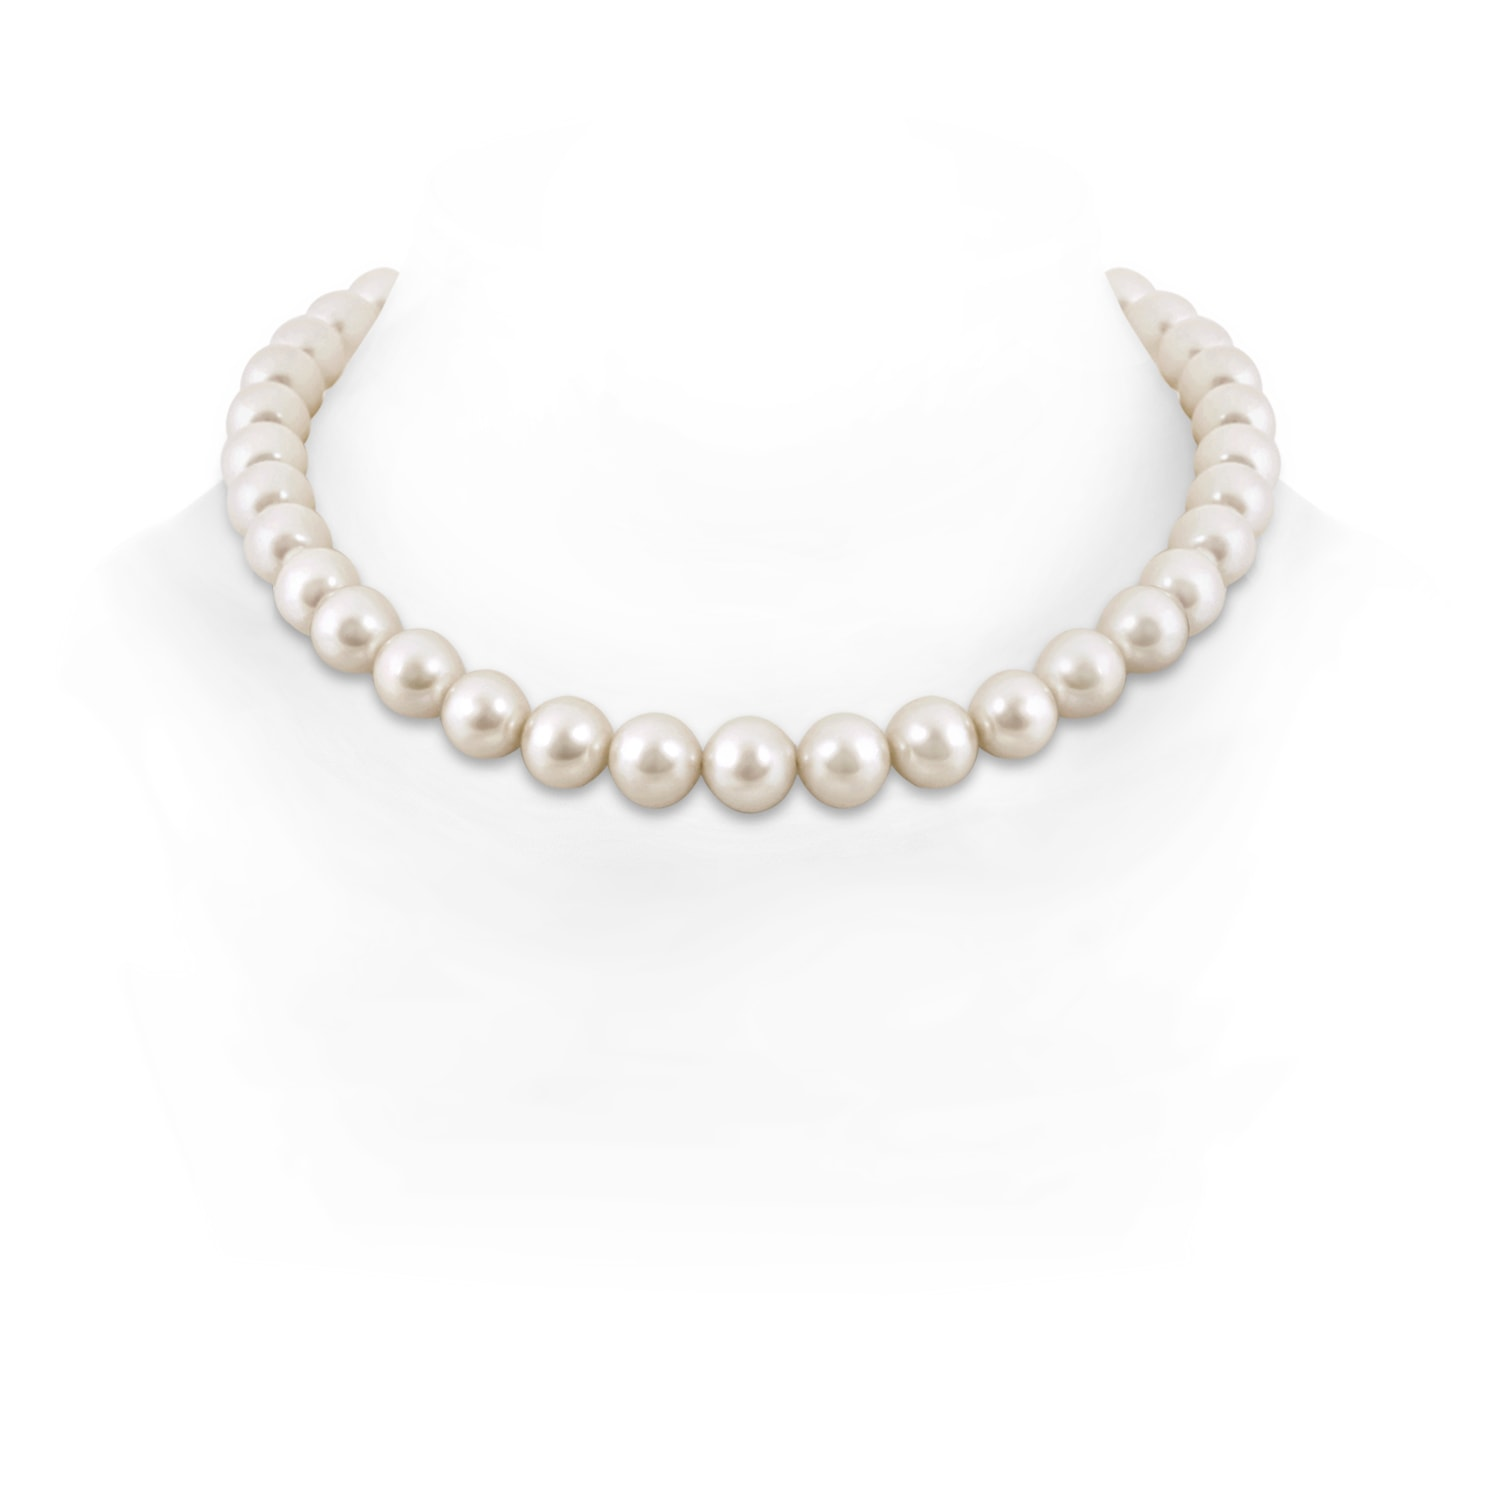 11 12mm, 16 South Sea Cultured Pearl Single Line Choker